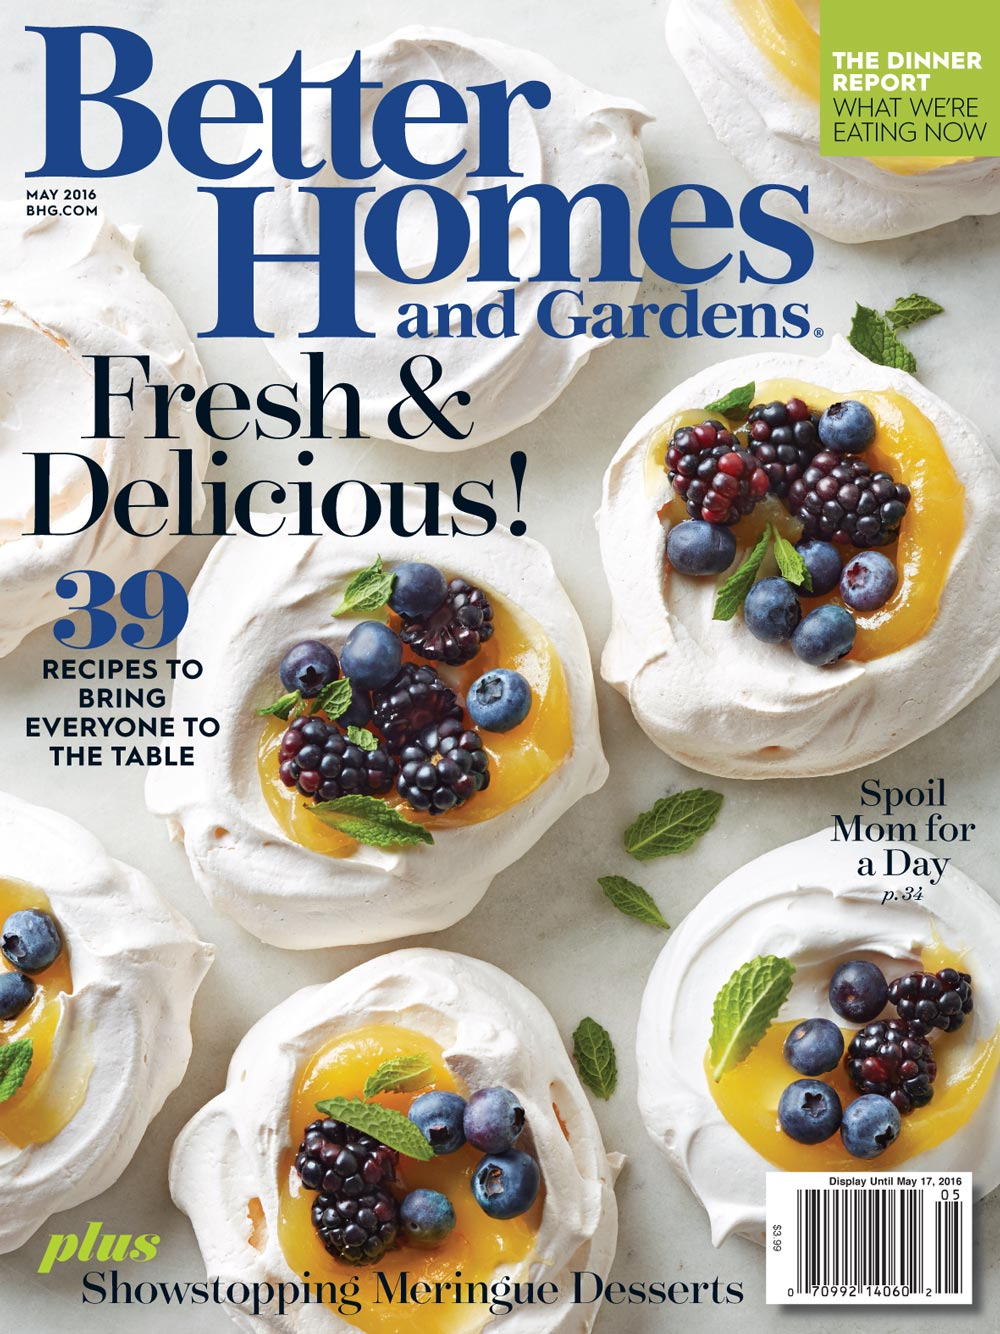 0_BetterHomesAndGardens-May2016.jpg